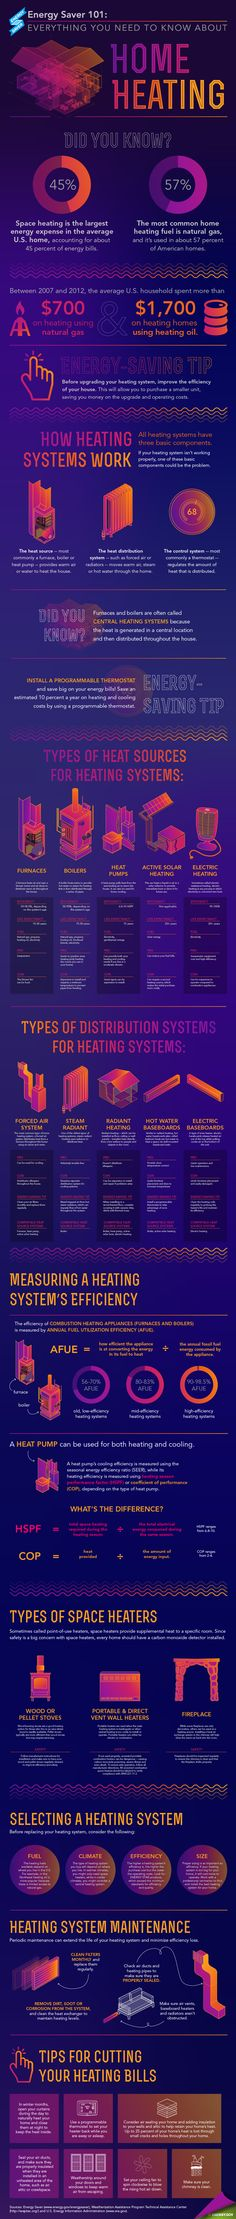 Home Heating 101 on Behance by Sarah Gerrity. An infographic that covers all basic information about home heating systems -- perfect to help Americans understand how their homes are heated (and how to save money) in the colder months!